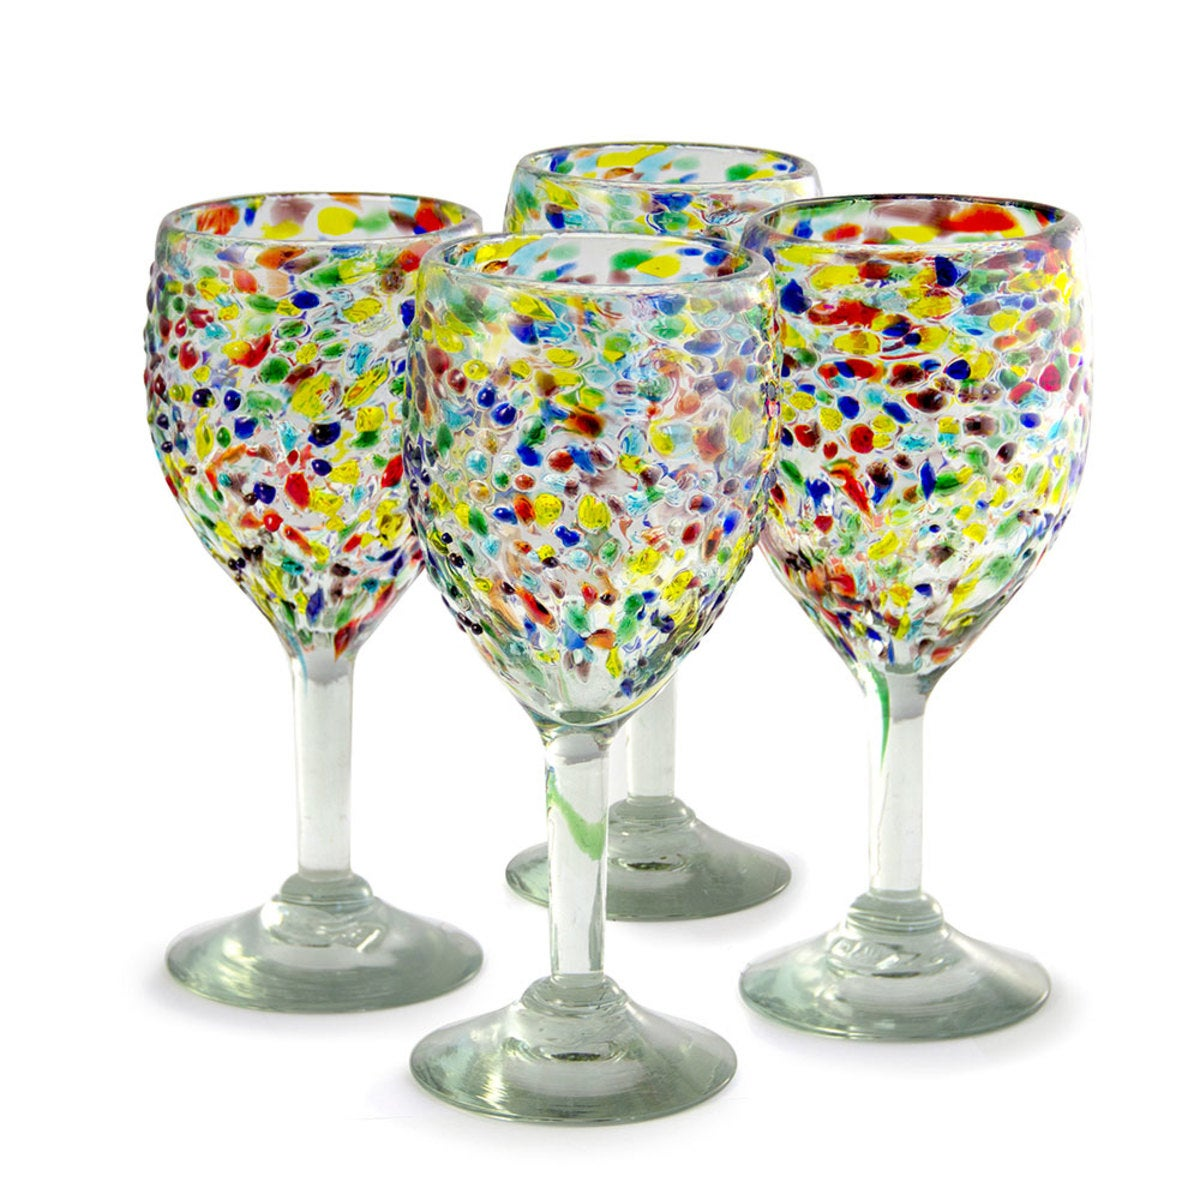 Confetti Recycled Wine Glass, Set of 4